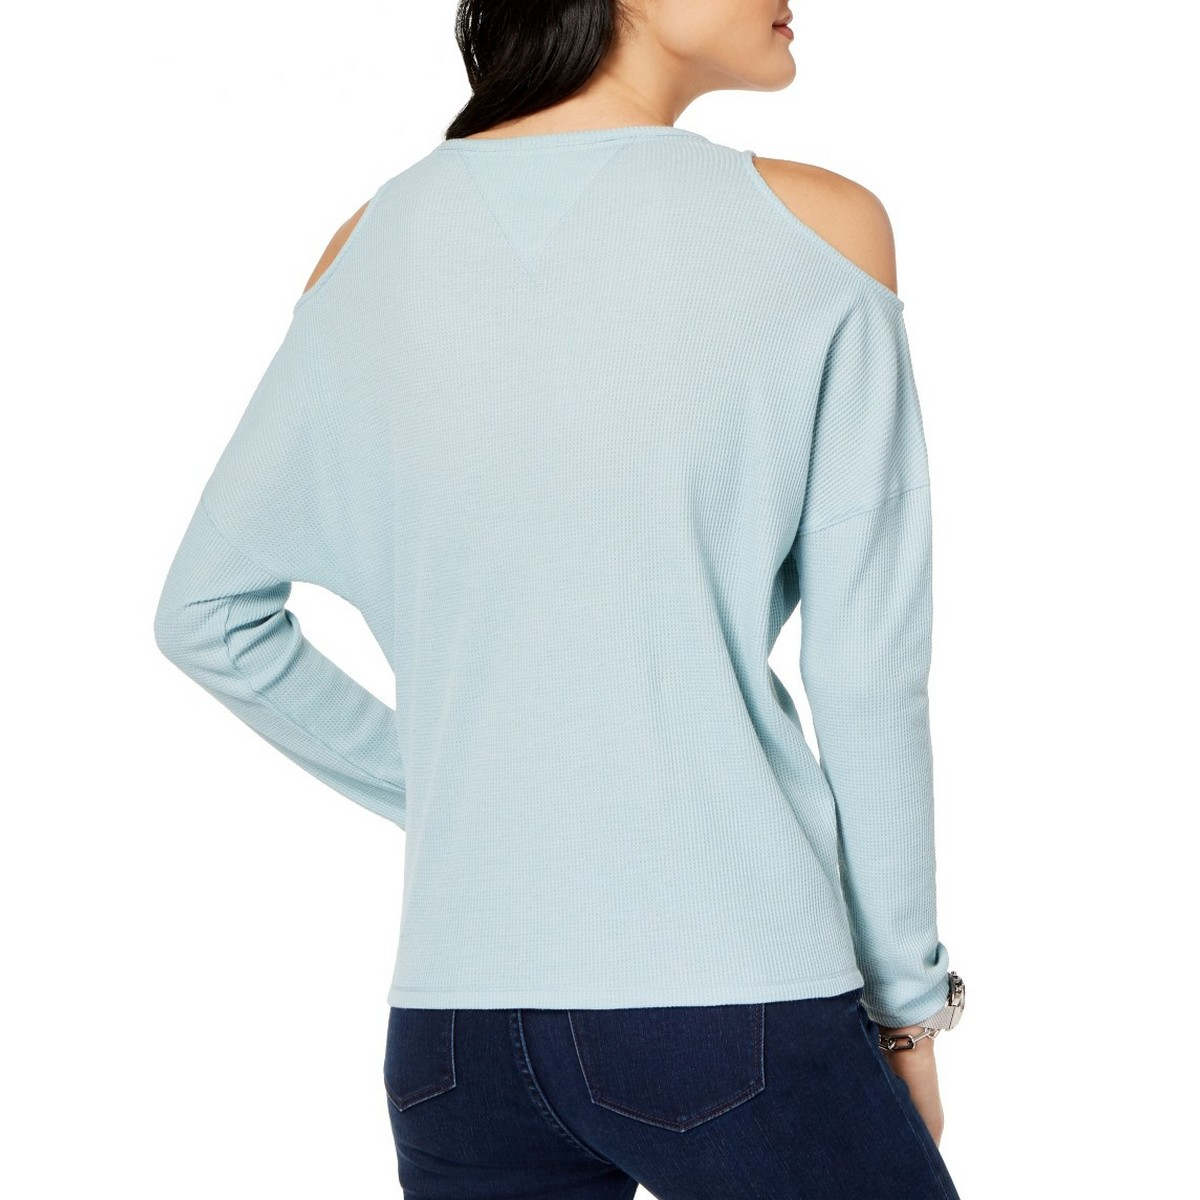 TOMMY-HILFIGER-NEW-Women-039-s-Cold-Shoulder-Waffle-Knit-Casual-Shirt-Top-TEDO thumbnail 6